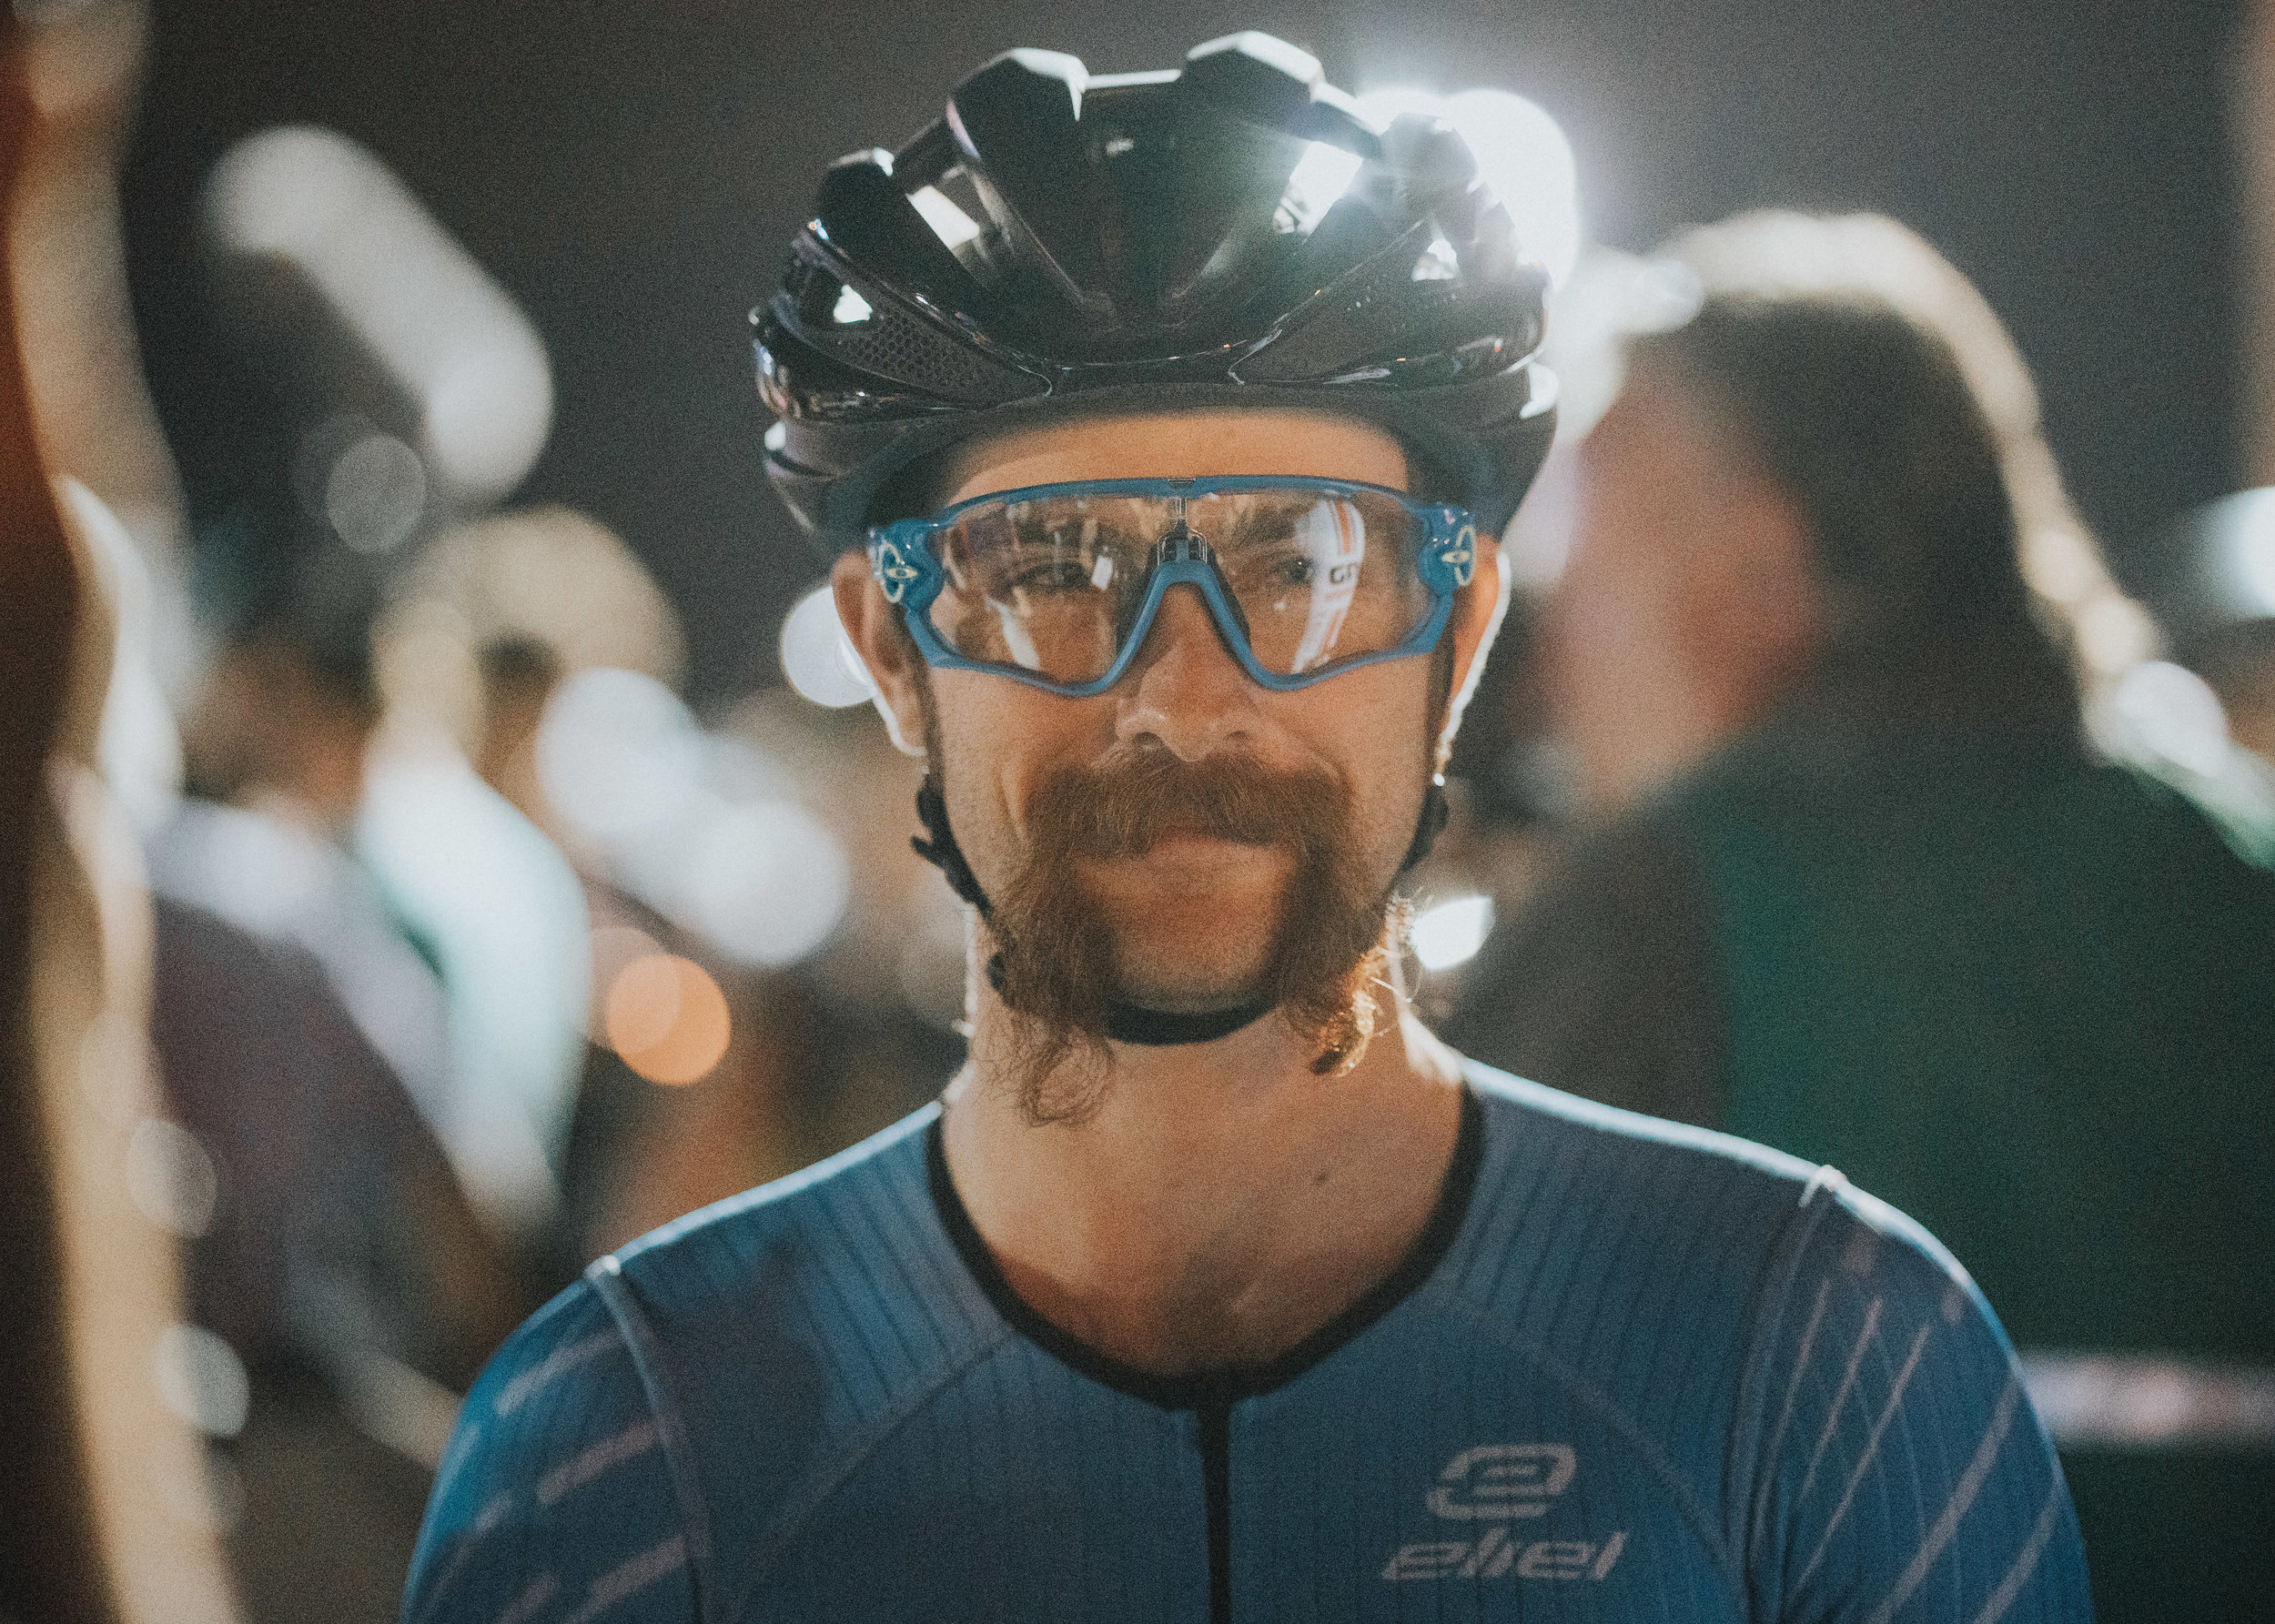 That is the smile of a man that likes to win bike races